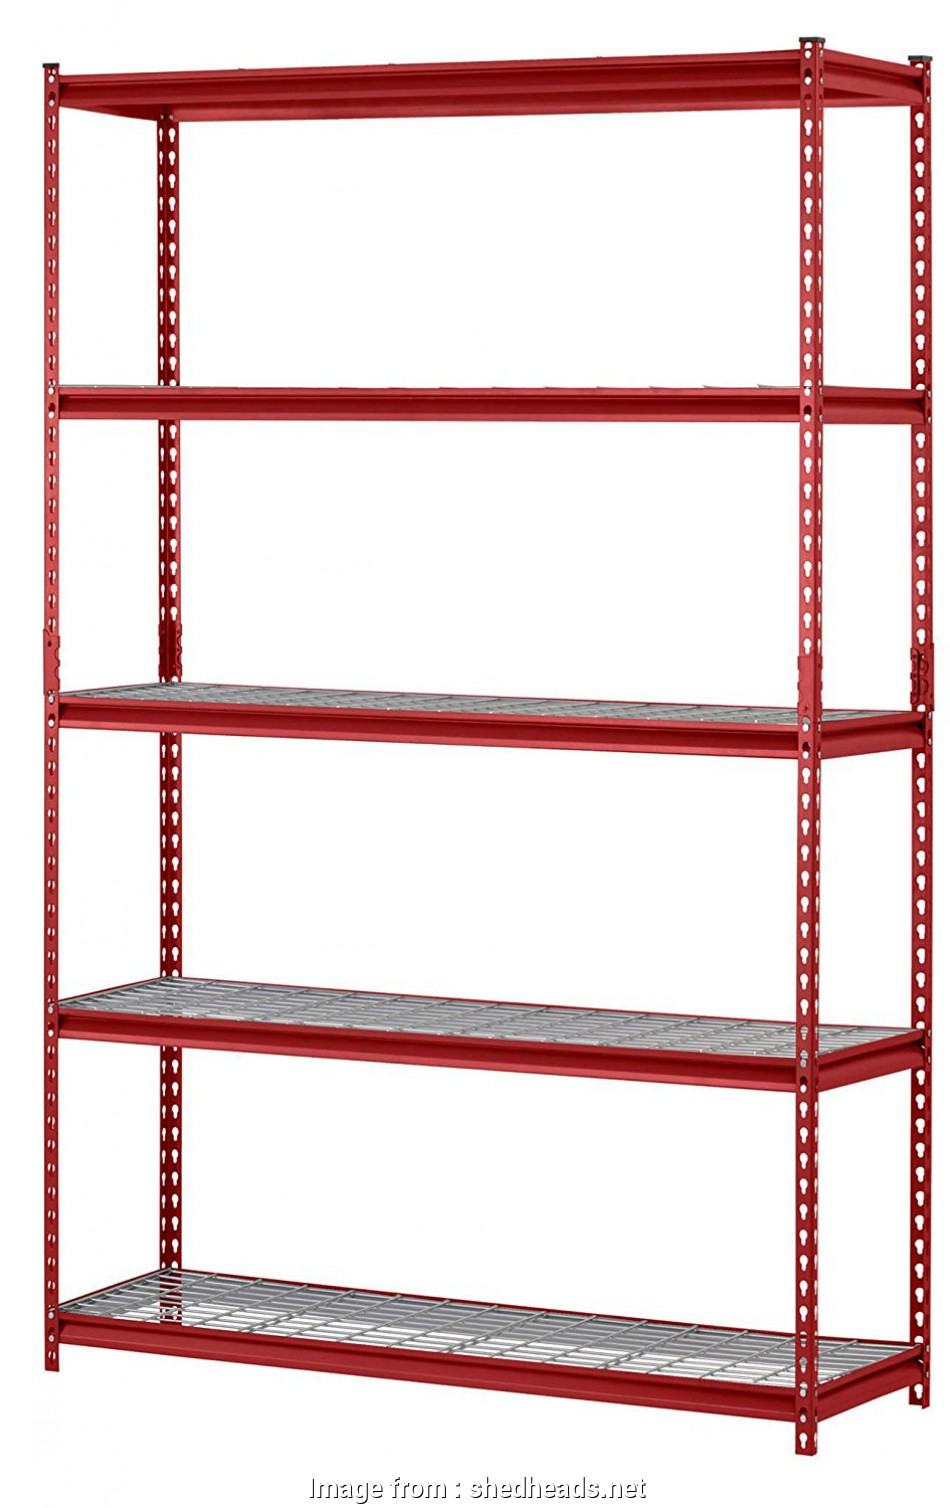 tall narrow wire shelving Read This Before Buying A Muscle Rack Shelving Unit Tall Narrow Wire Shelving Creative Read This Before Buying A Muscle Rack Shelving Unit Photos